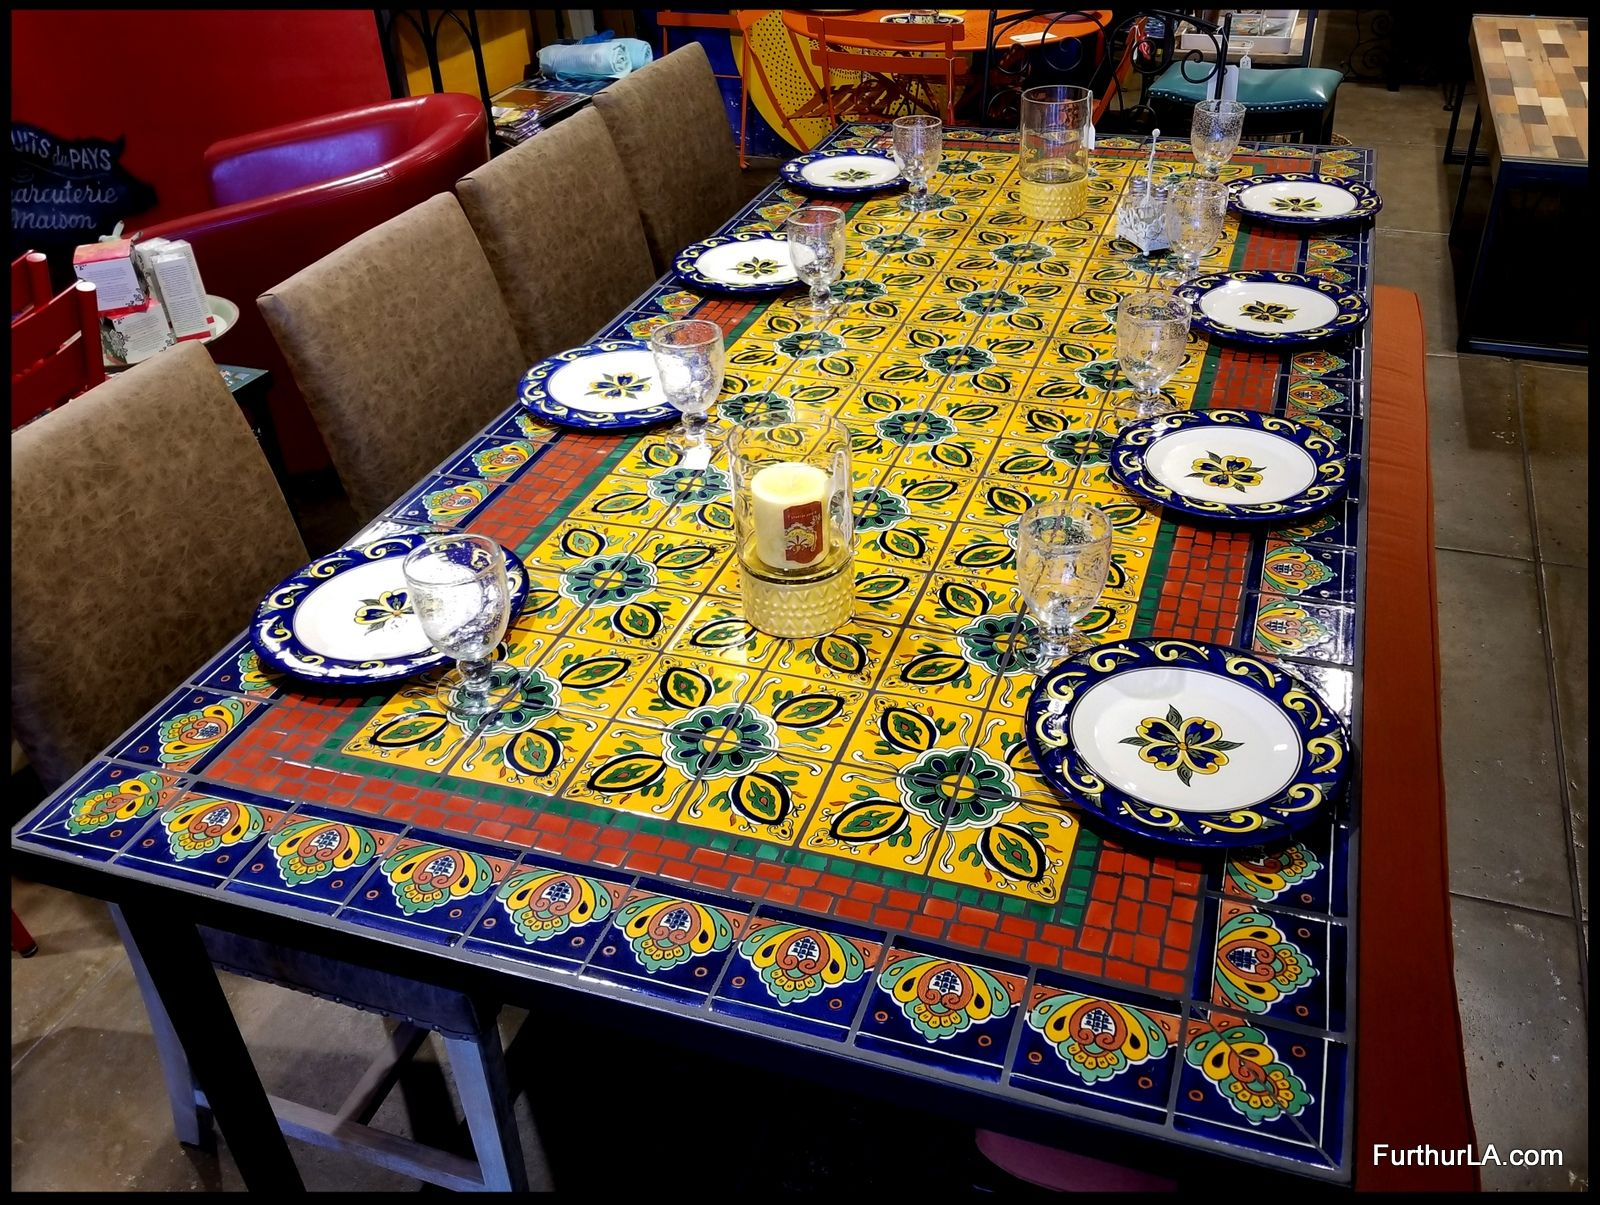 Furthur Wholesale Mosaic Dining Tables Mosaic Tile Table Dining